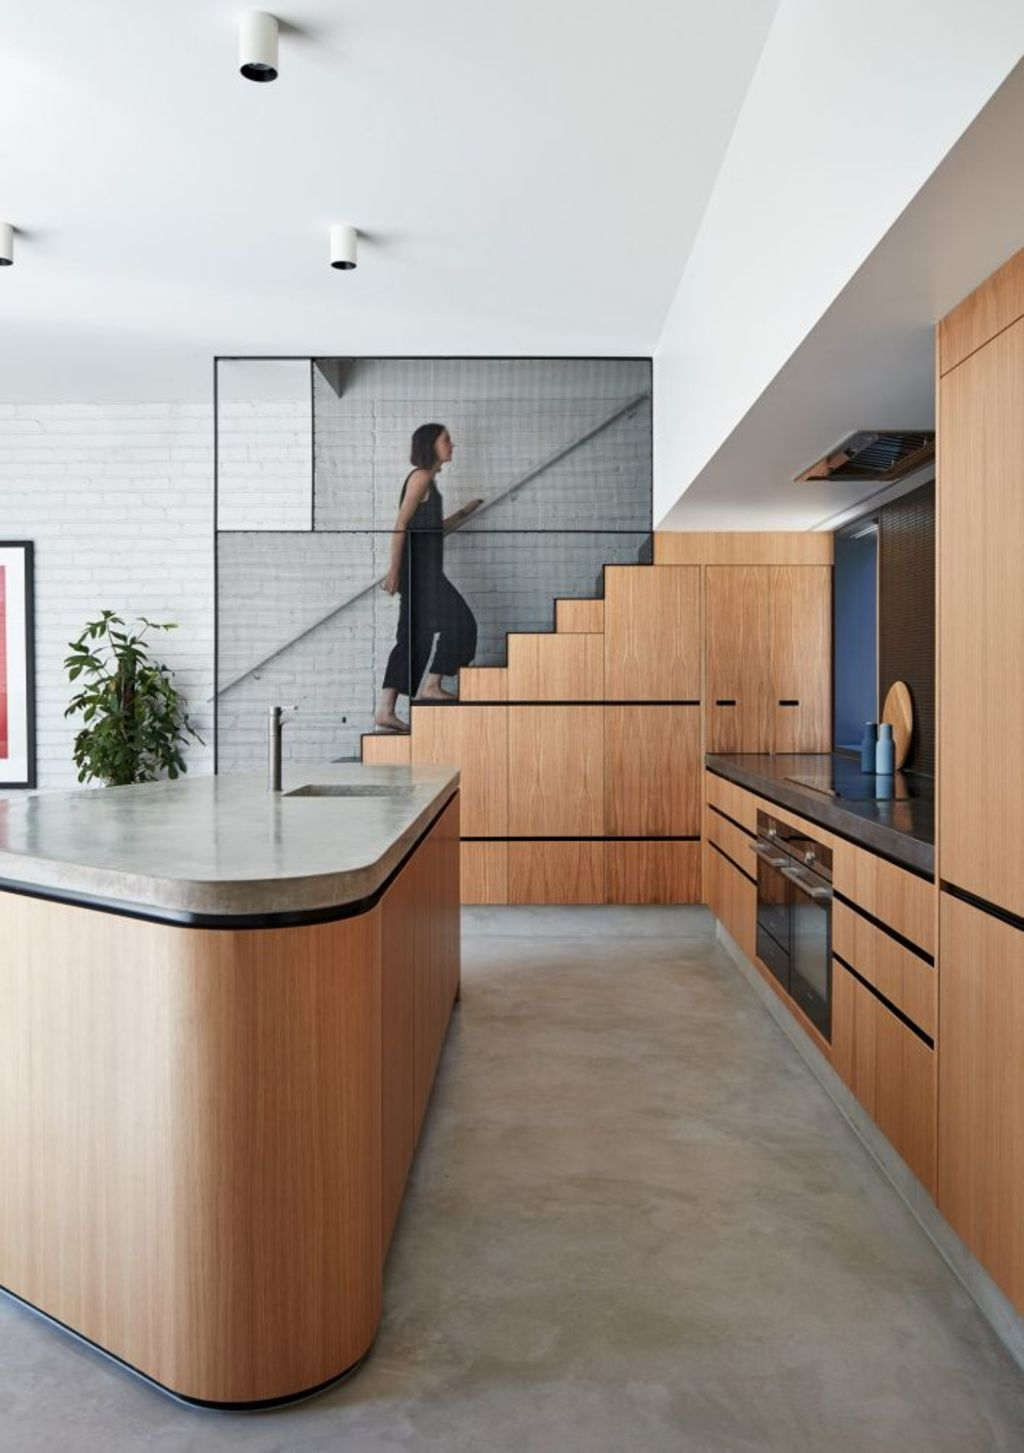 MAKE Architecture's Perimeter House includes a sensational kitchen Photo: Peter Bennetts